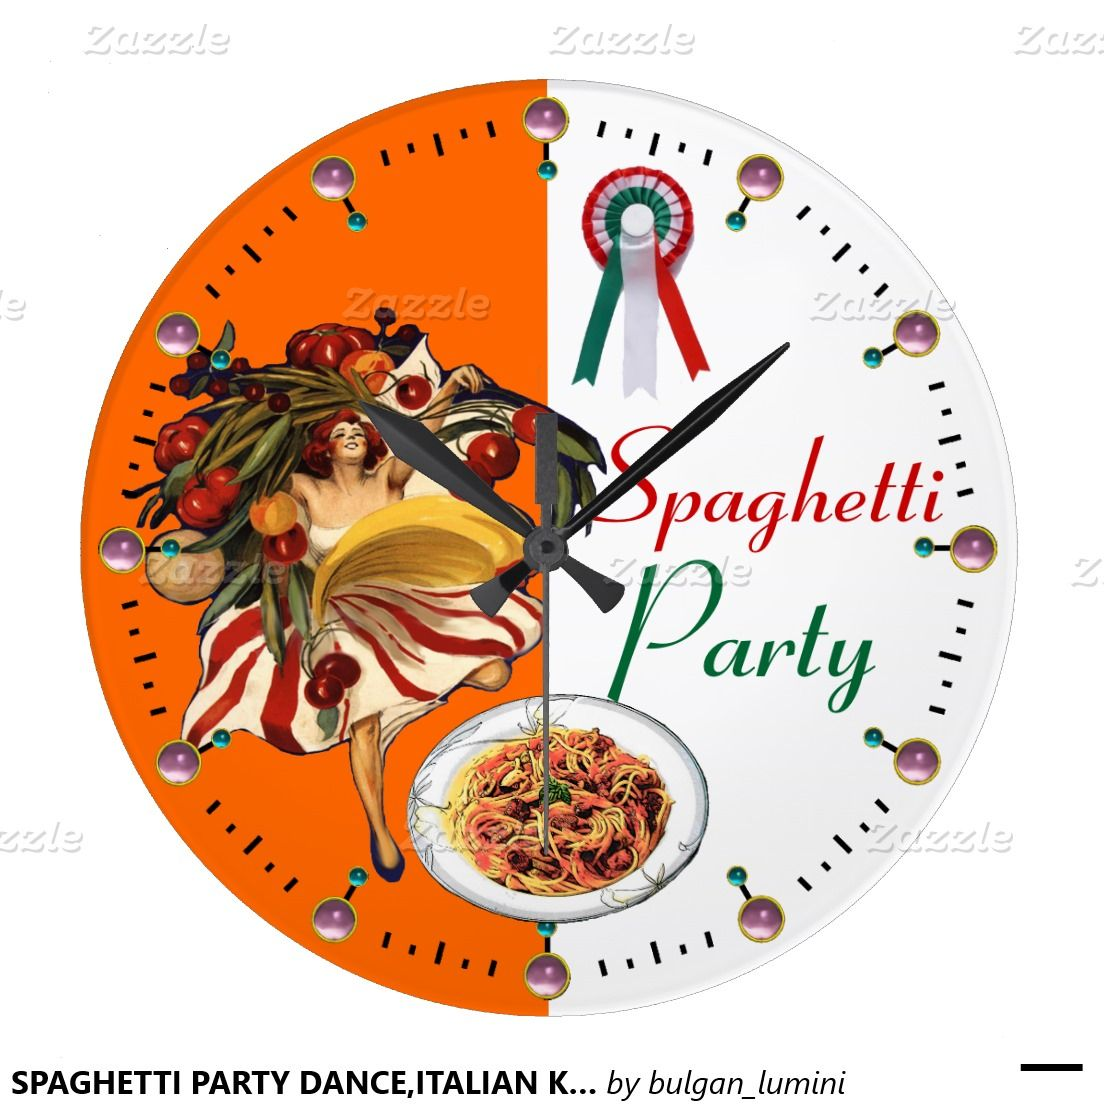 Spaghetti party danceitalian kitchen and tomatoes large clock